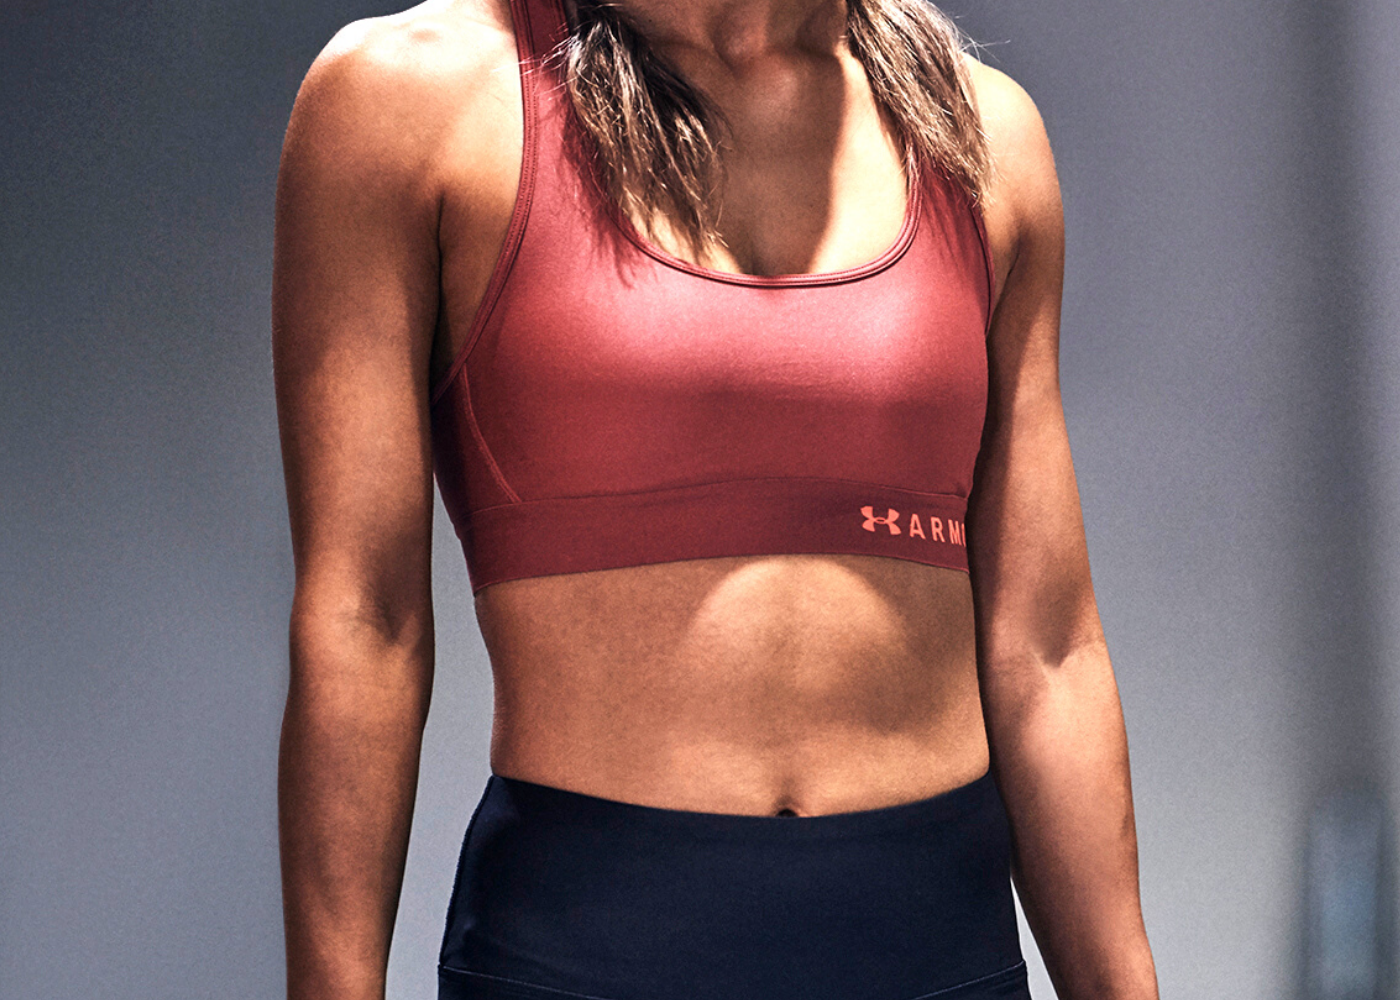 Women's Armour Mid Crossback Sports Bra. Photography: Under Armour